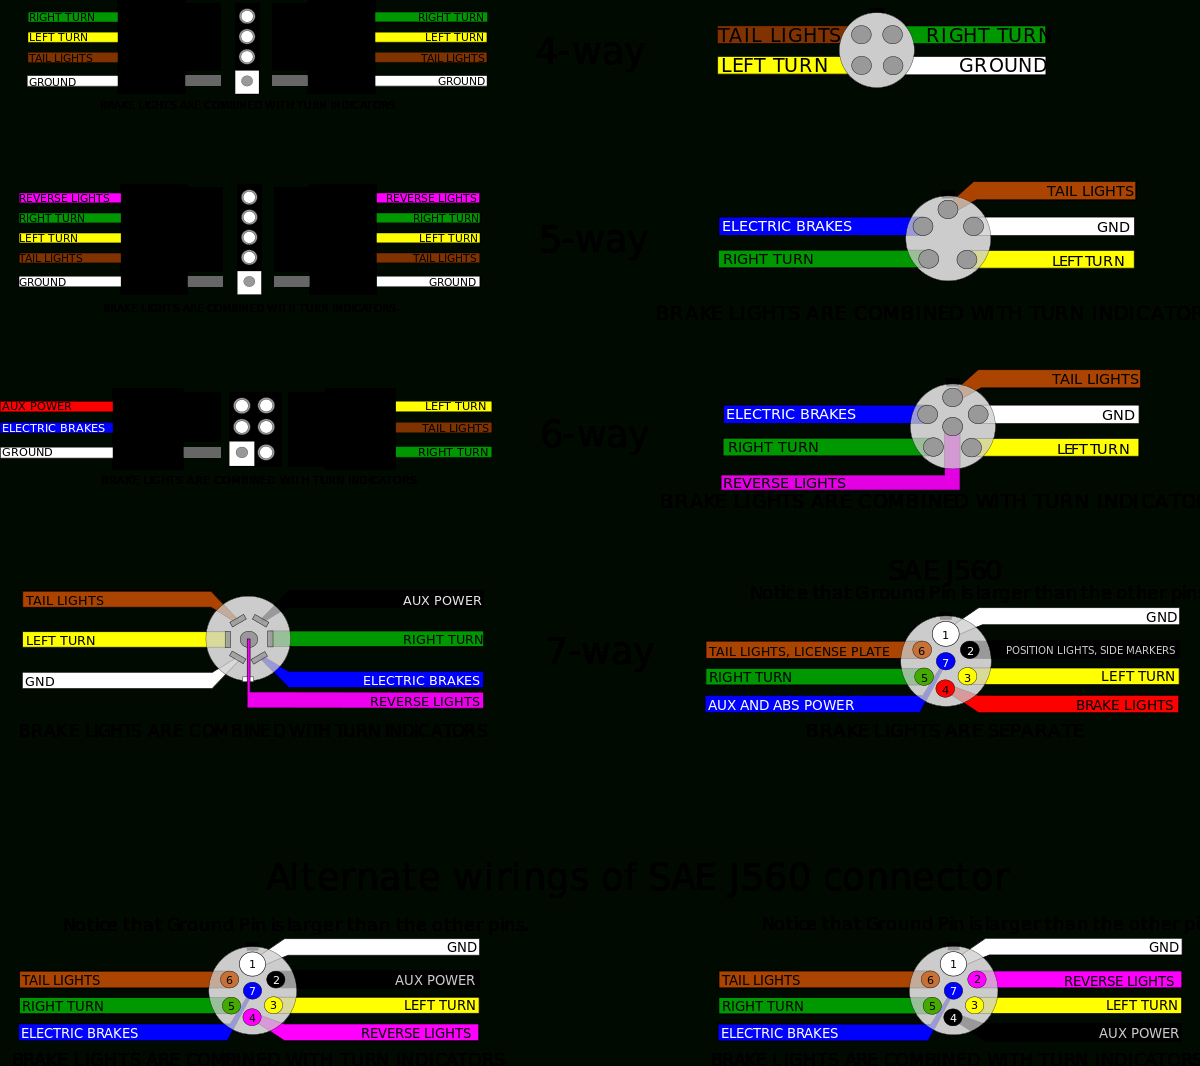 East Trailer Wiring Diagram | Wiring Library - East Trailer Wiring Diagram